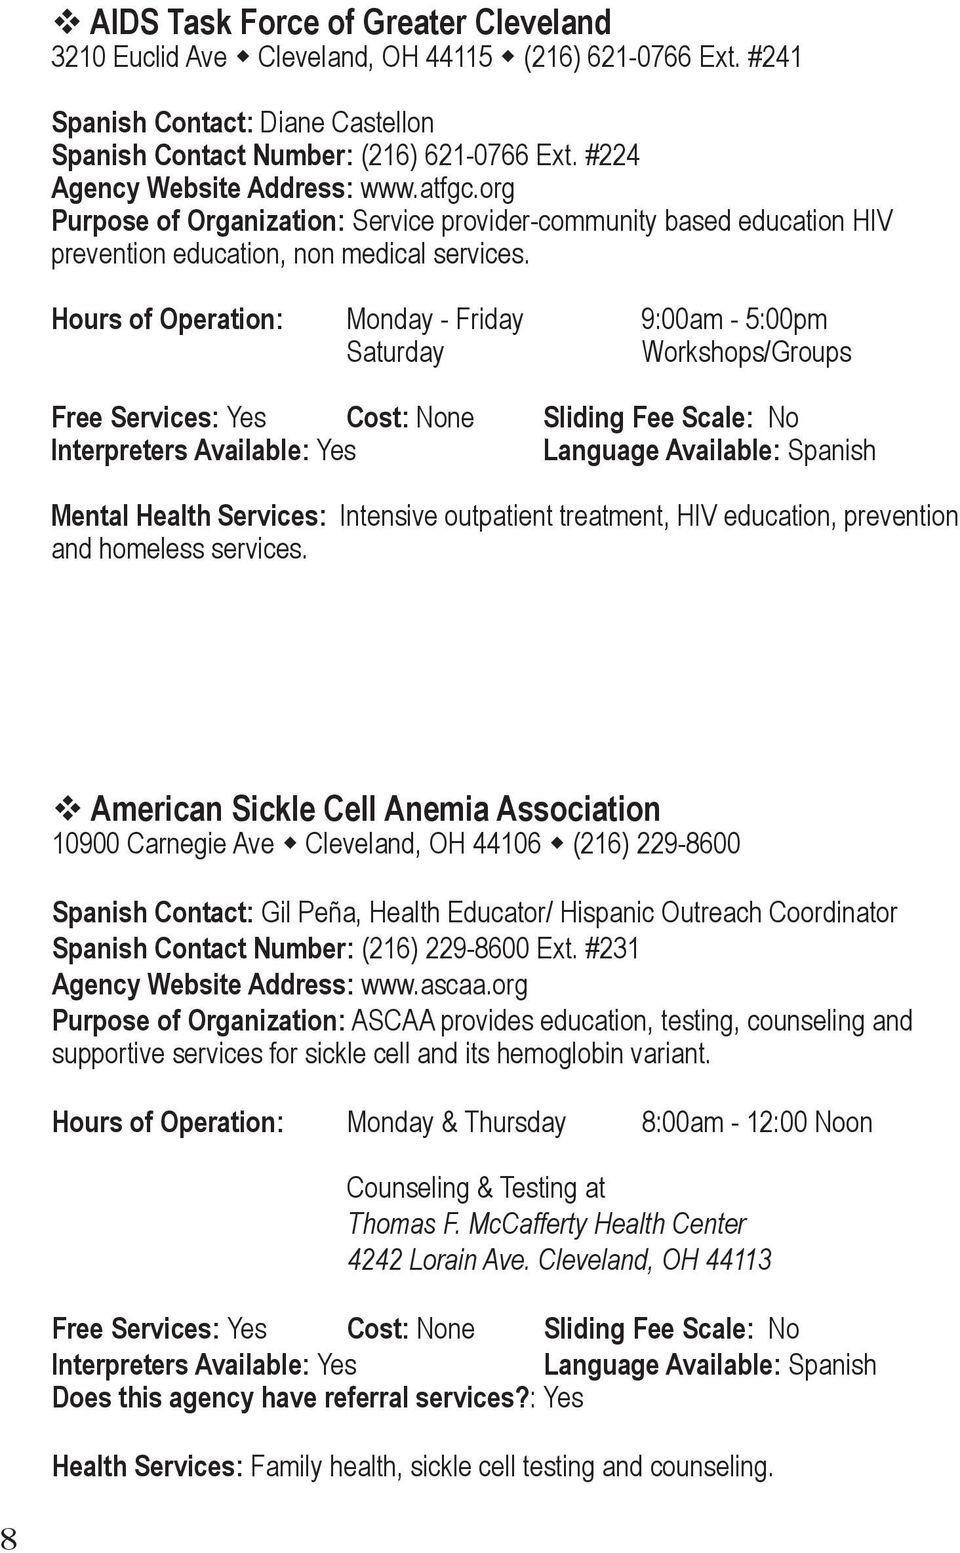 Hours of Operation: Monday - Friday 9:00am - 5:00pm Saturday Workshops/Groups Free Services: Yes Cost: None Sliding Fee Scale: No Interpreters Available: Yes Language Available: Spanish Mental Health